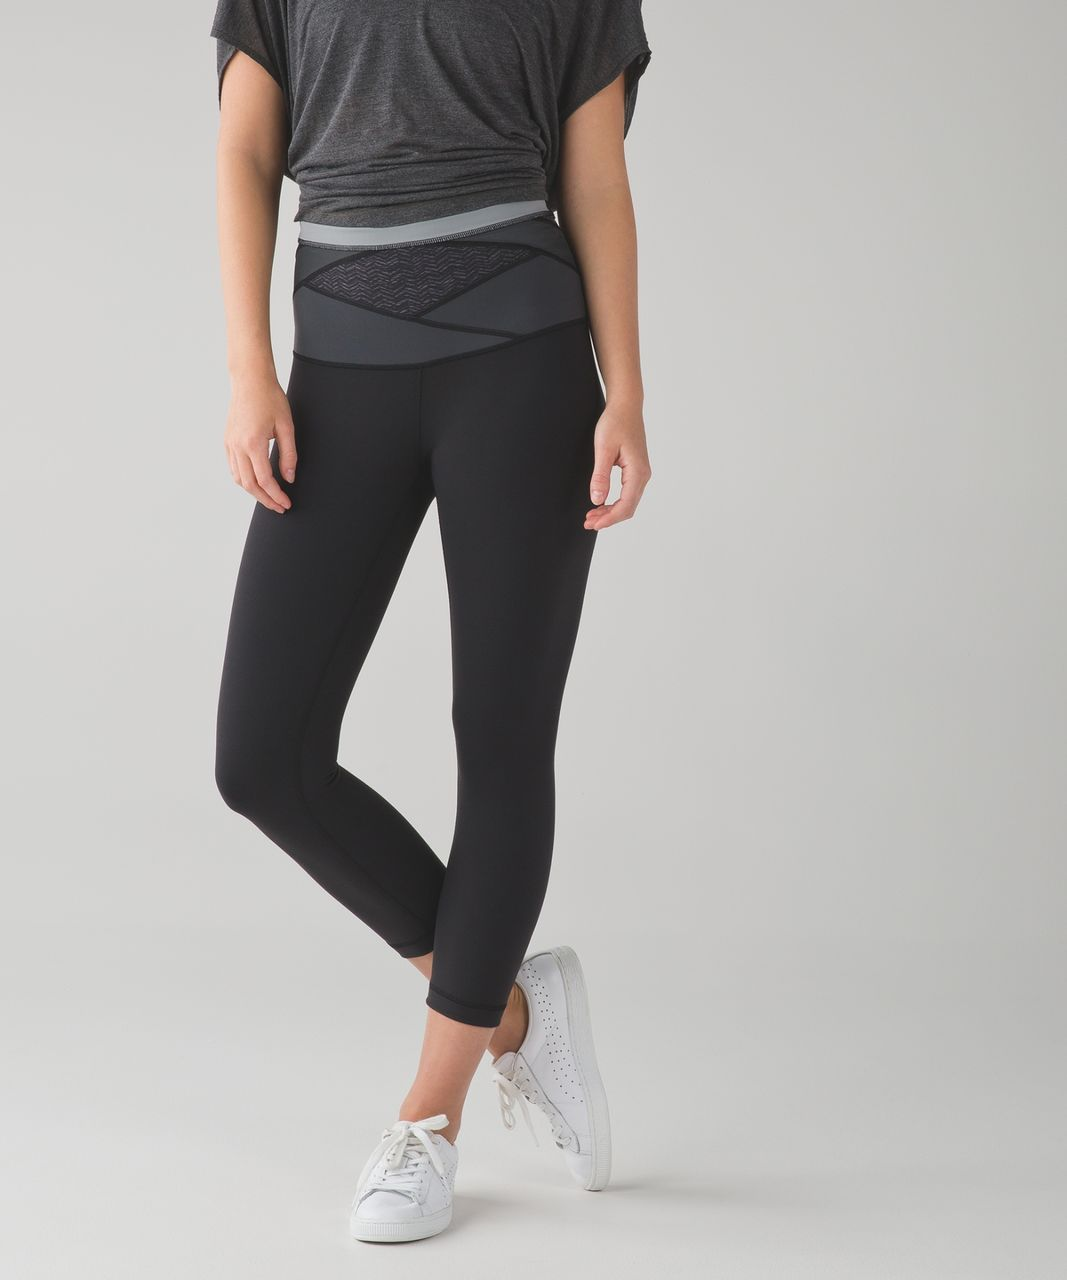 Lululemon Wunder Under Crop (Hi-Rise) *Full-On Luon - Black / Irregular Spacebone Deep Coal Black / Battleship